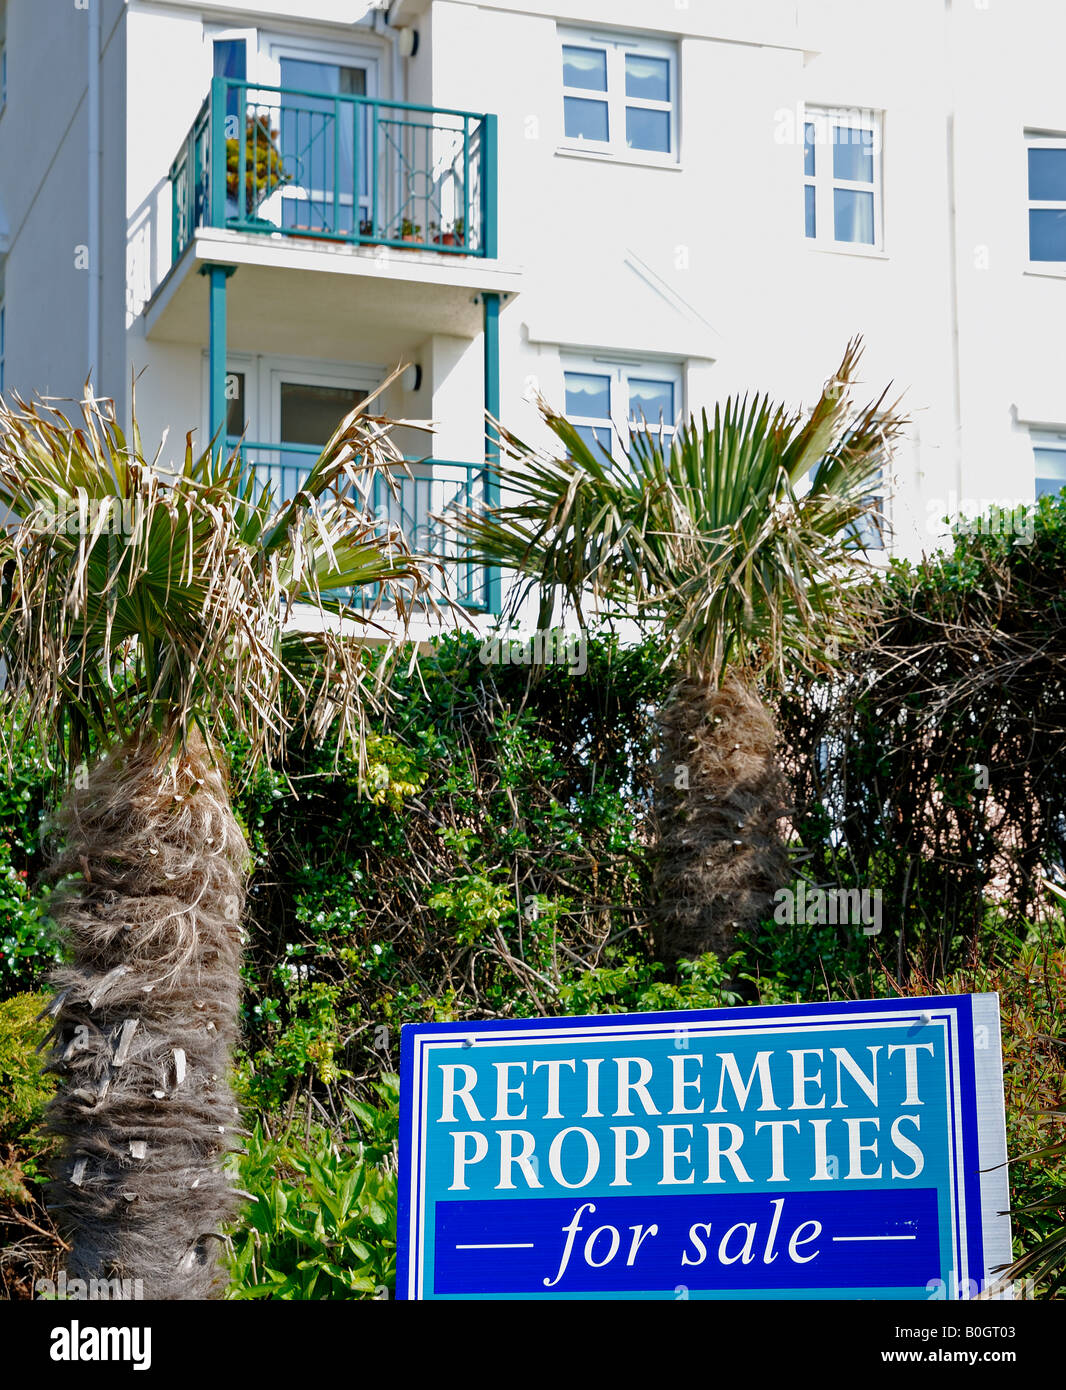 new retirement properties for sale on the seafront at falmouth,cornwall,england - Stock Image